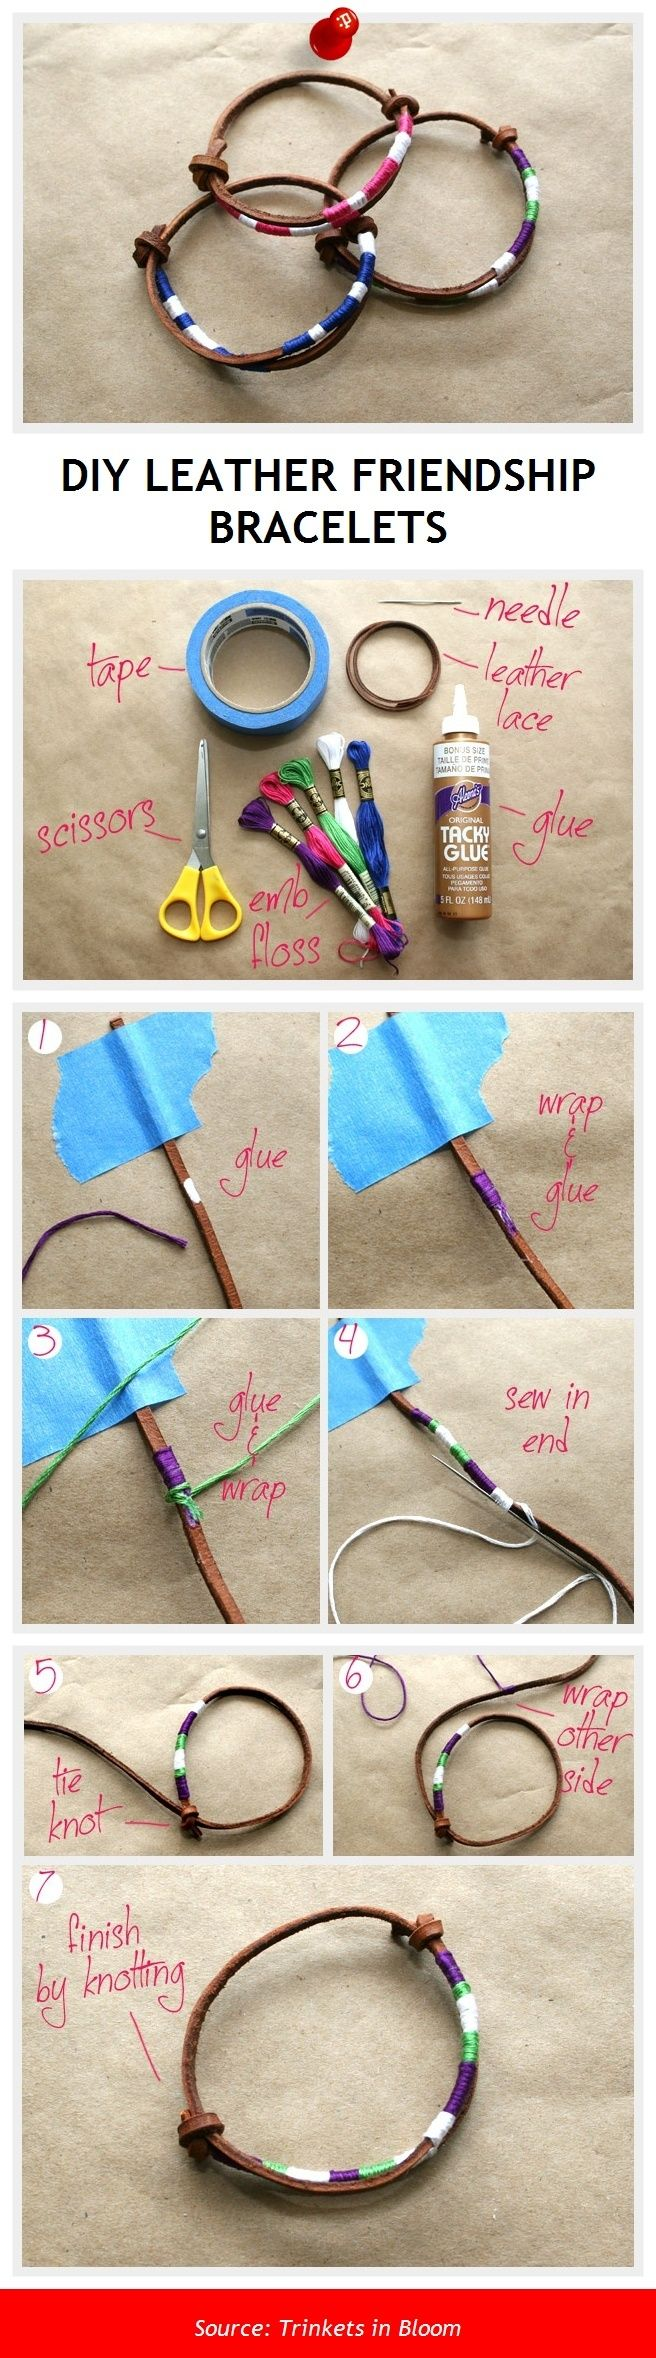 DIY LEATHER FRIENDSHIP BRACELETS